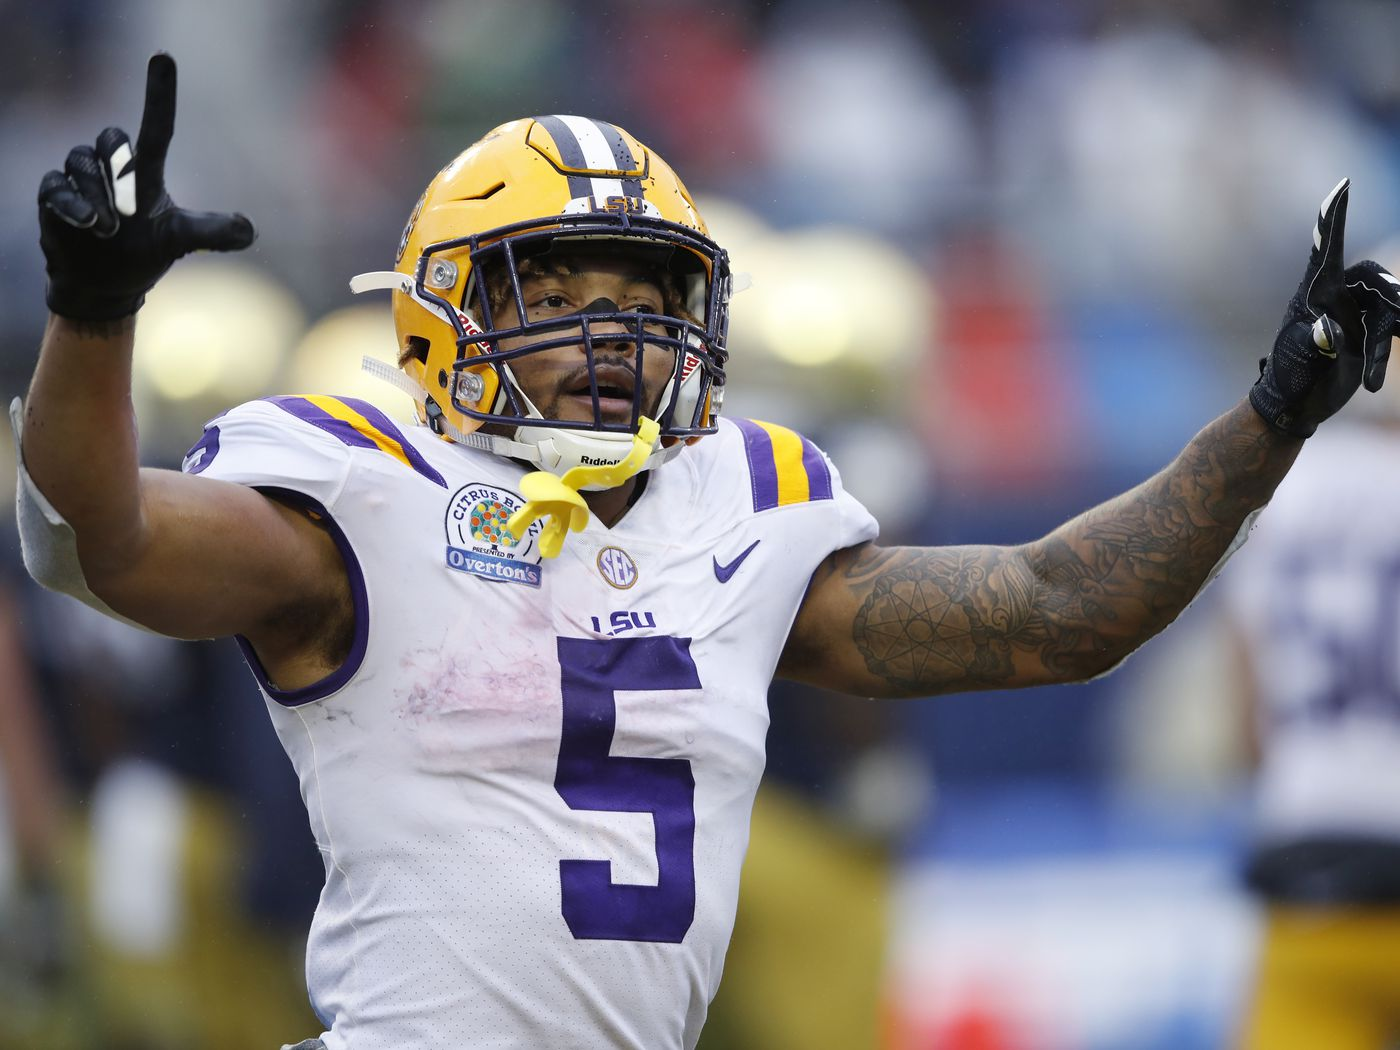 Scouting the 2018 NFL Draft - Derrius Guice, RB, LSU